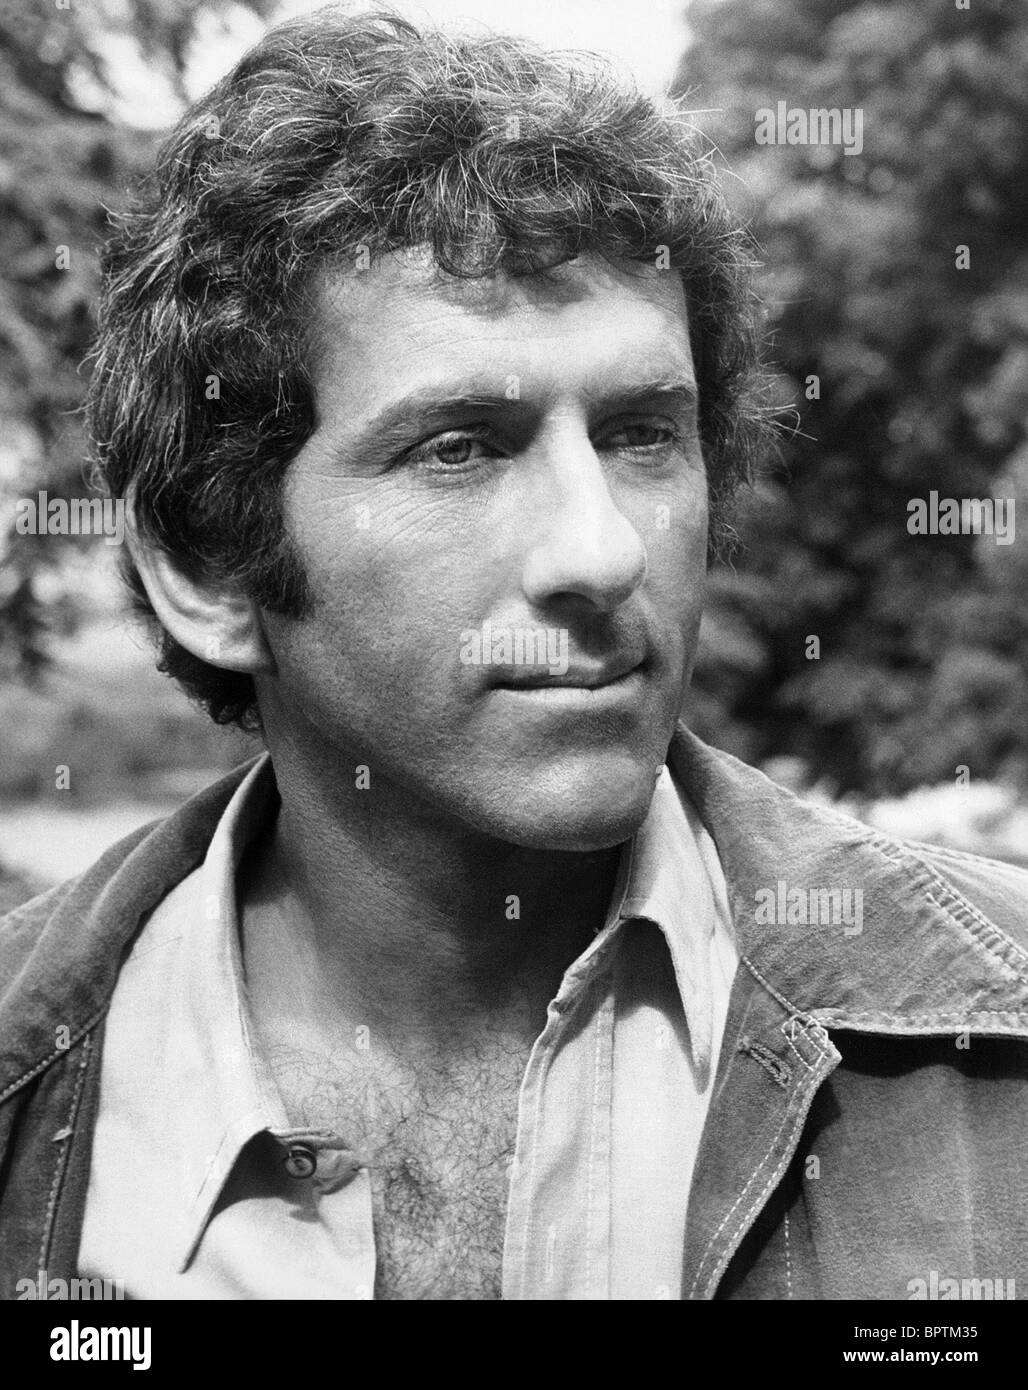 BARRY NEWMAN ACTOR (1979) - Stock Image